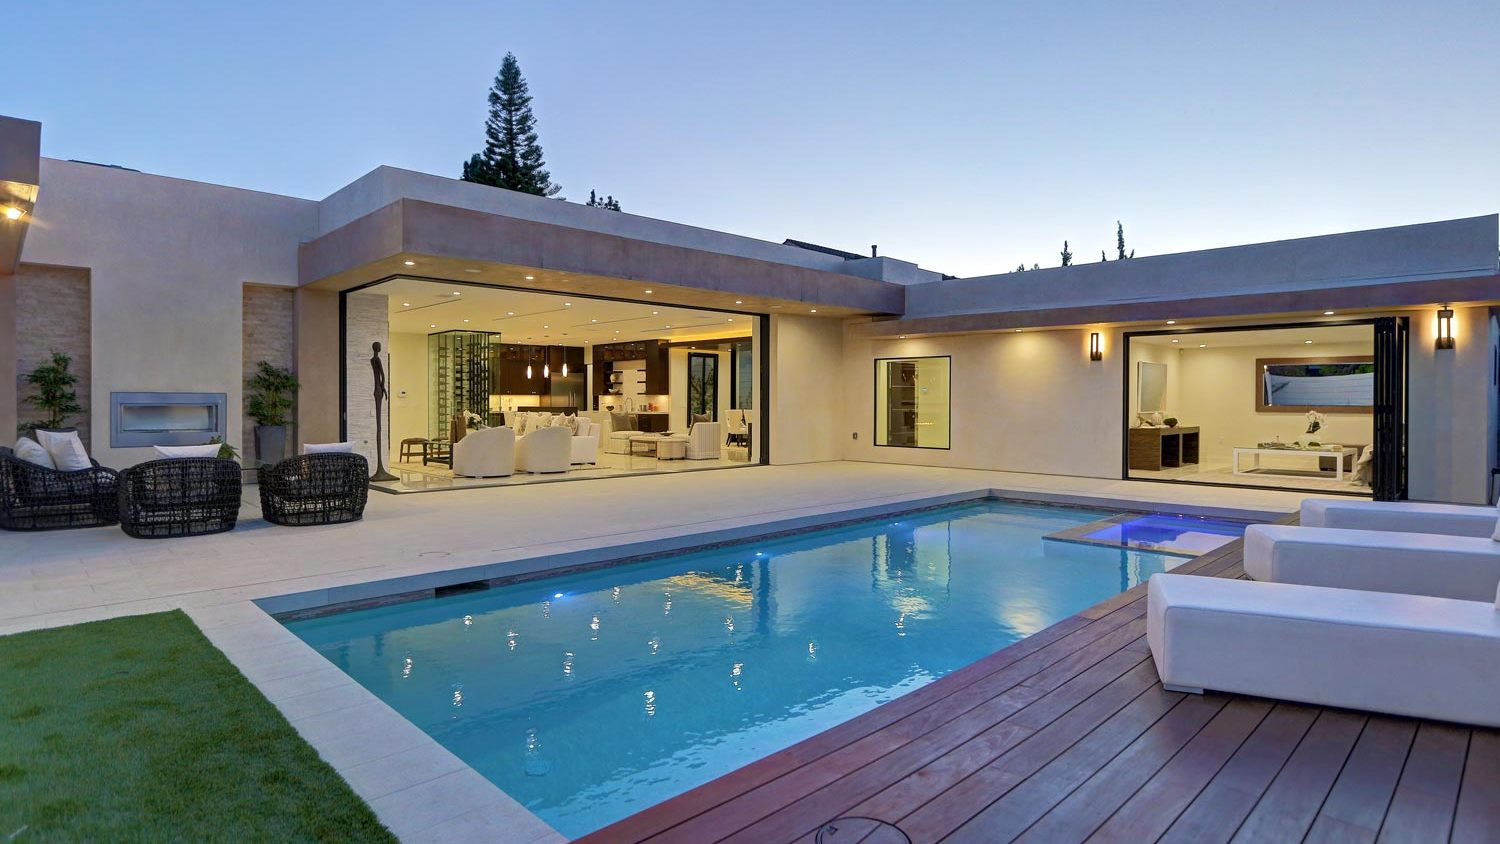 Spectacular 5 bedrooms and 5.5 baths Mid-century Home in Los Angeles